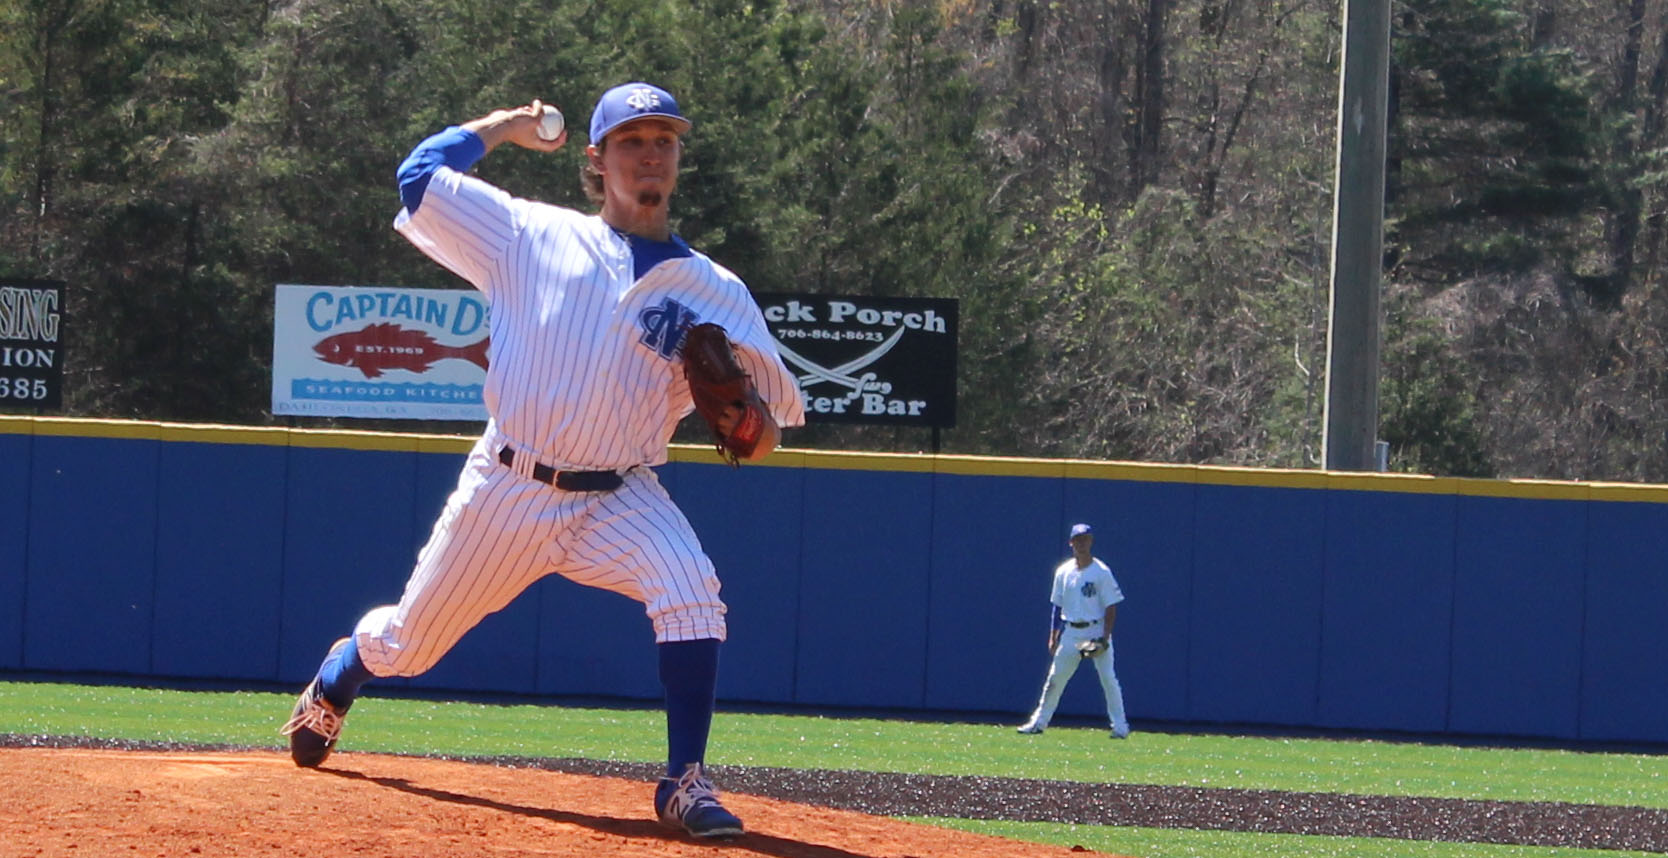 UNG pitcher Dylan Peppers reaches back to deliver a pitch during Sunday's game against Montevallo. (Photo by Jake Cantrell)